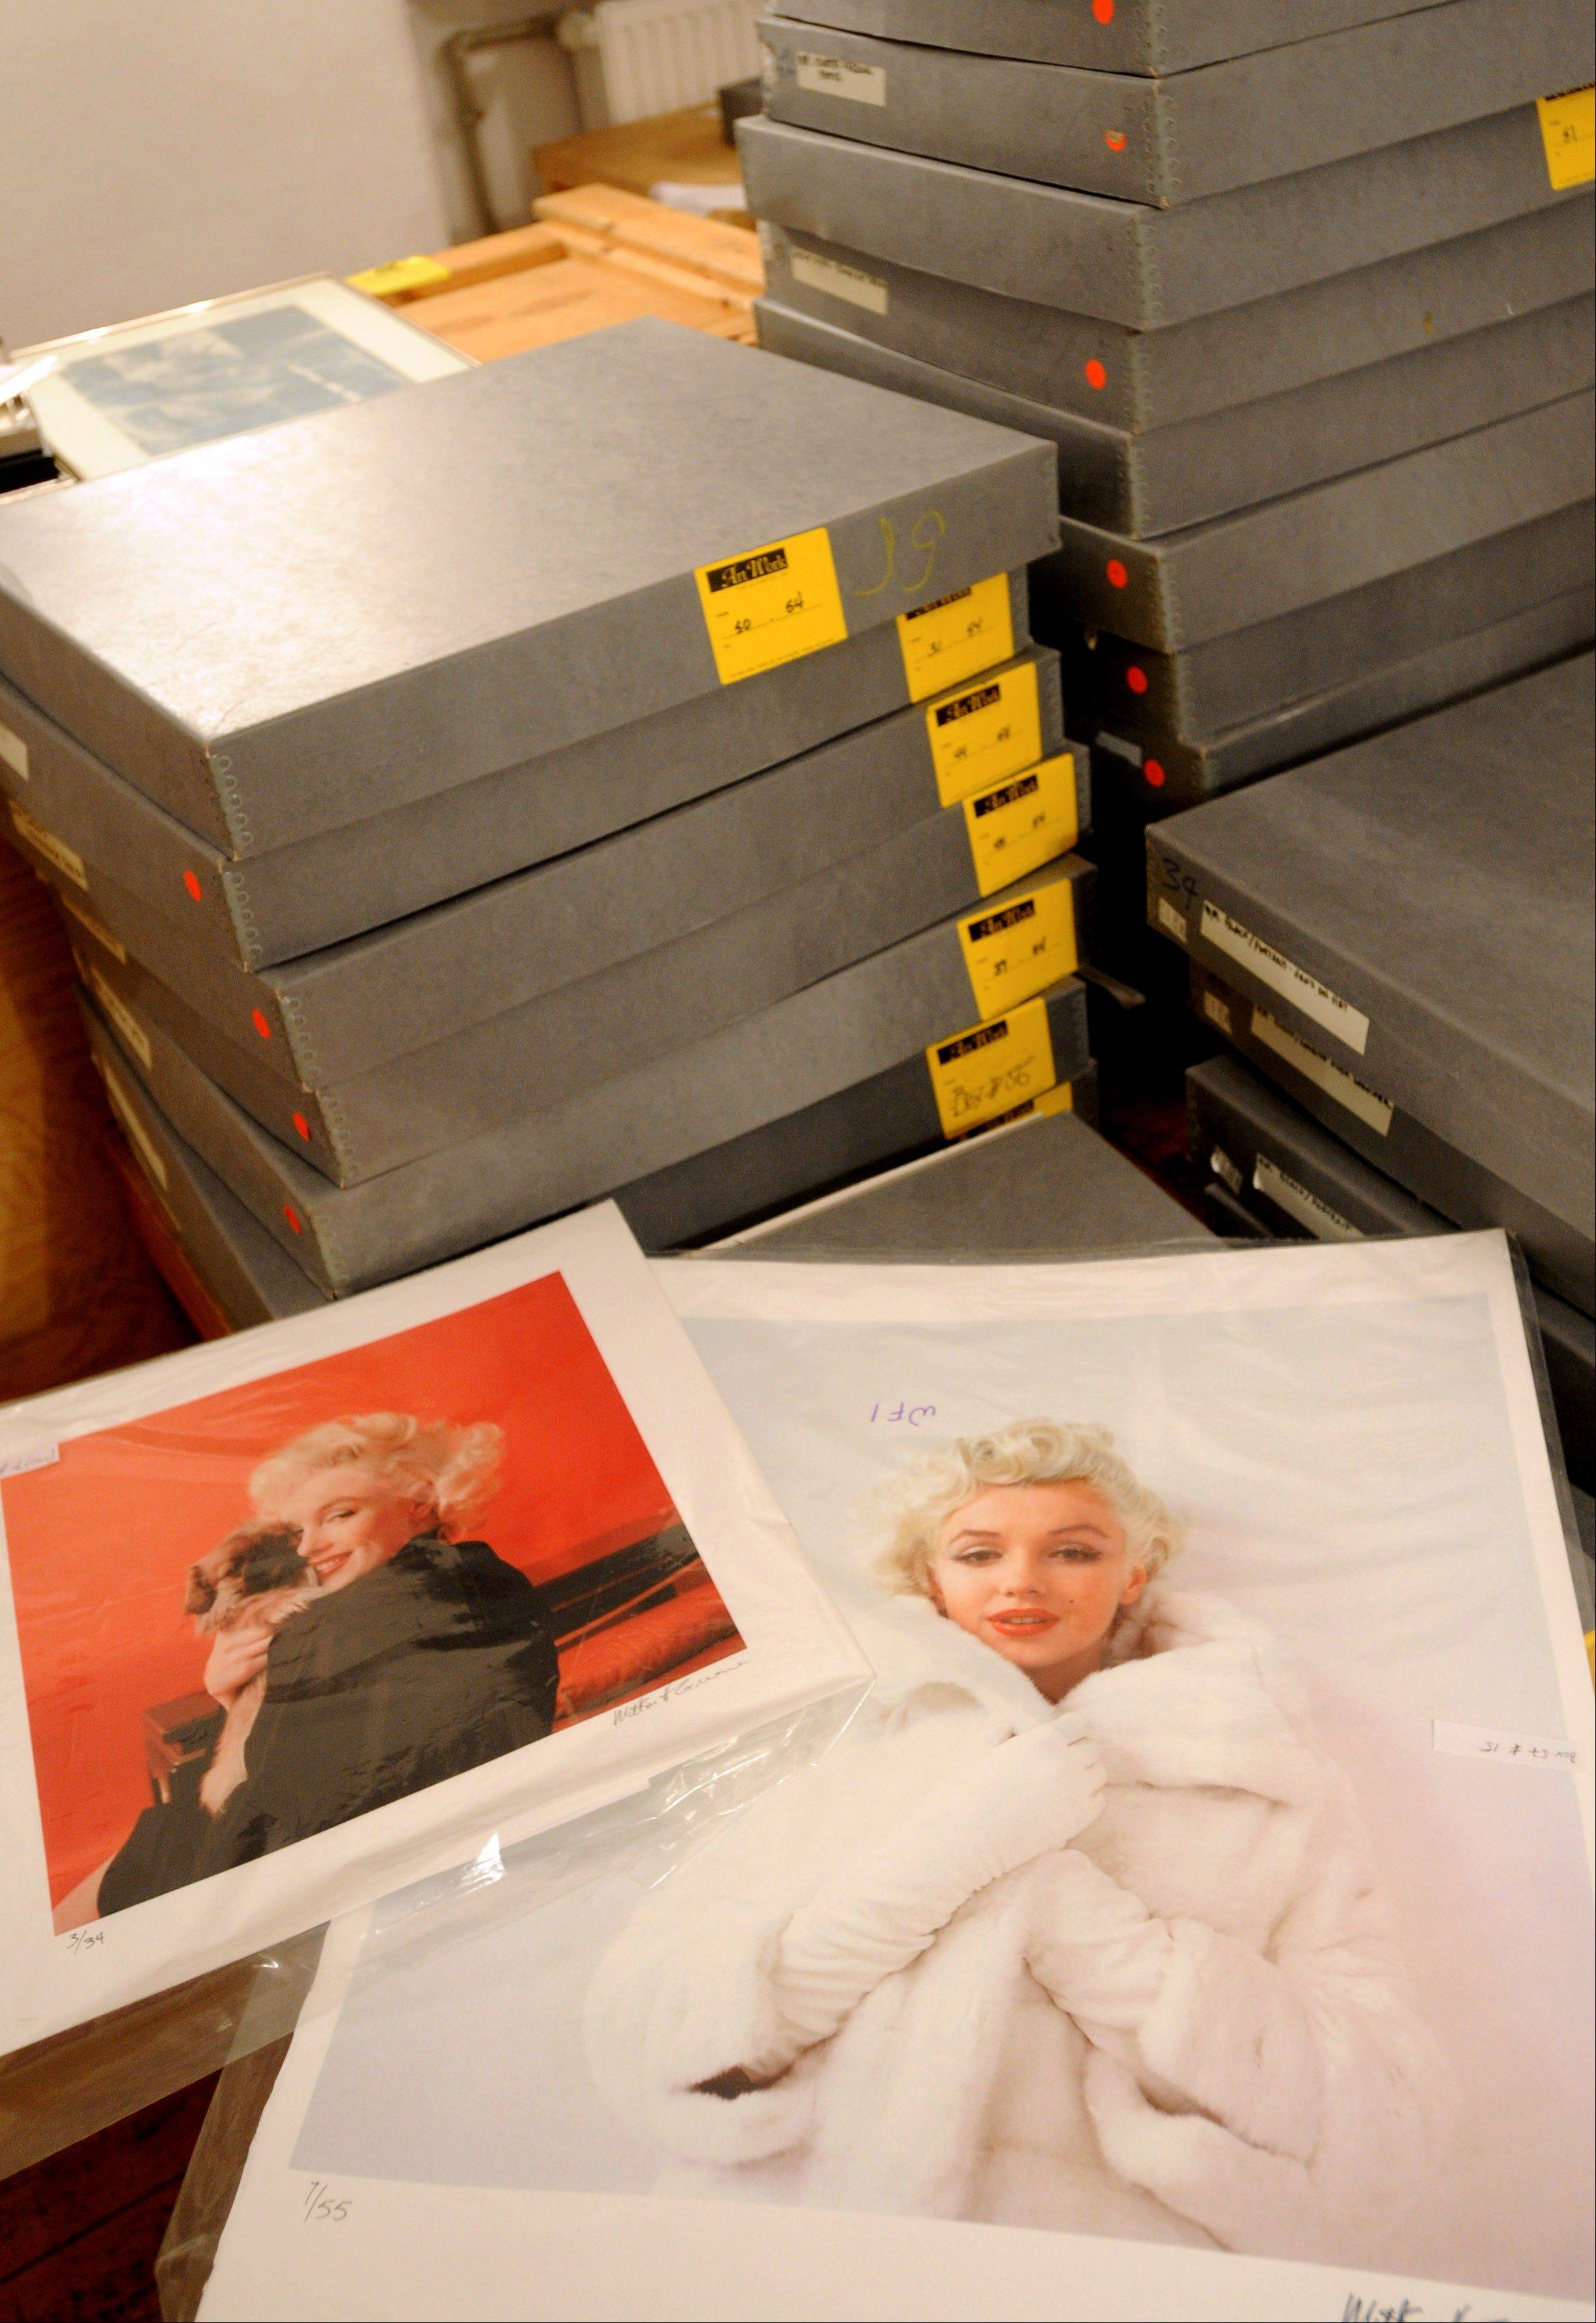 Two photos of Marylin Monroe by the late celebrity photographer Milton H. Greene are laid Friday upon boxes containing more pictures, in Warsaw, Poland.